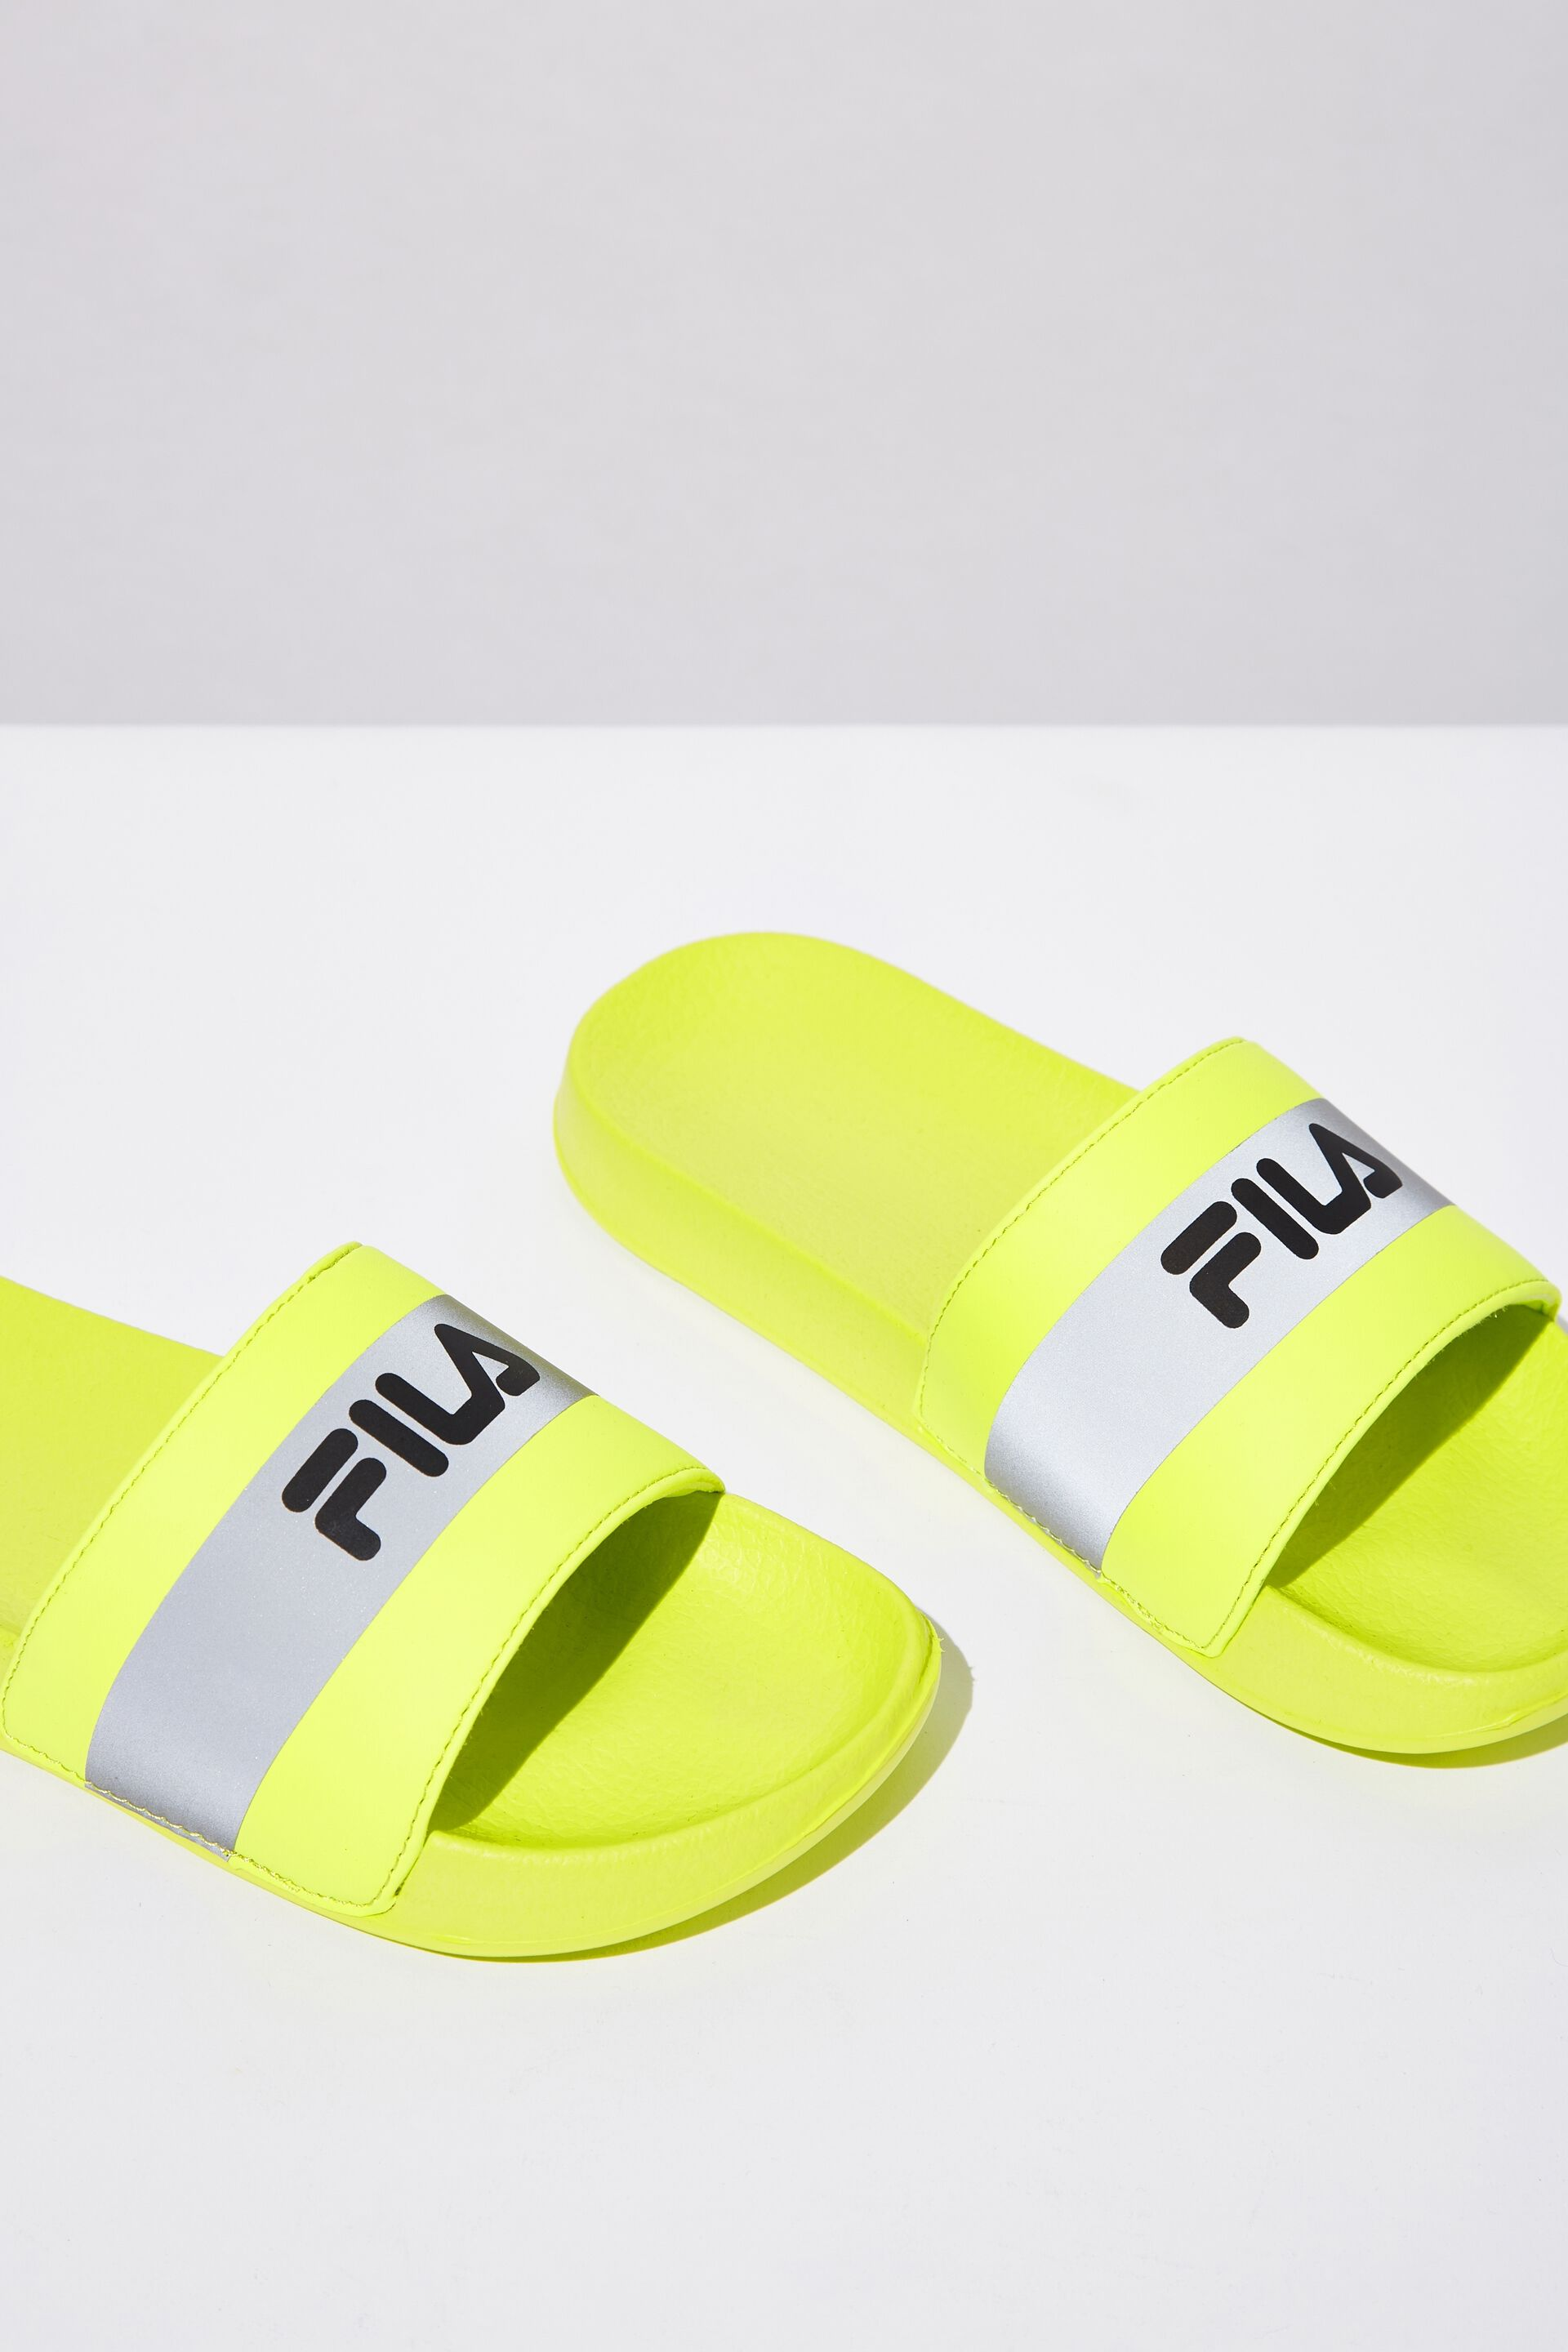 844b70885 yellow slides. guys shoes sneakers boots plimsolls more factorie .